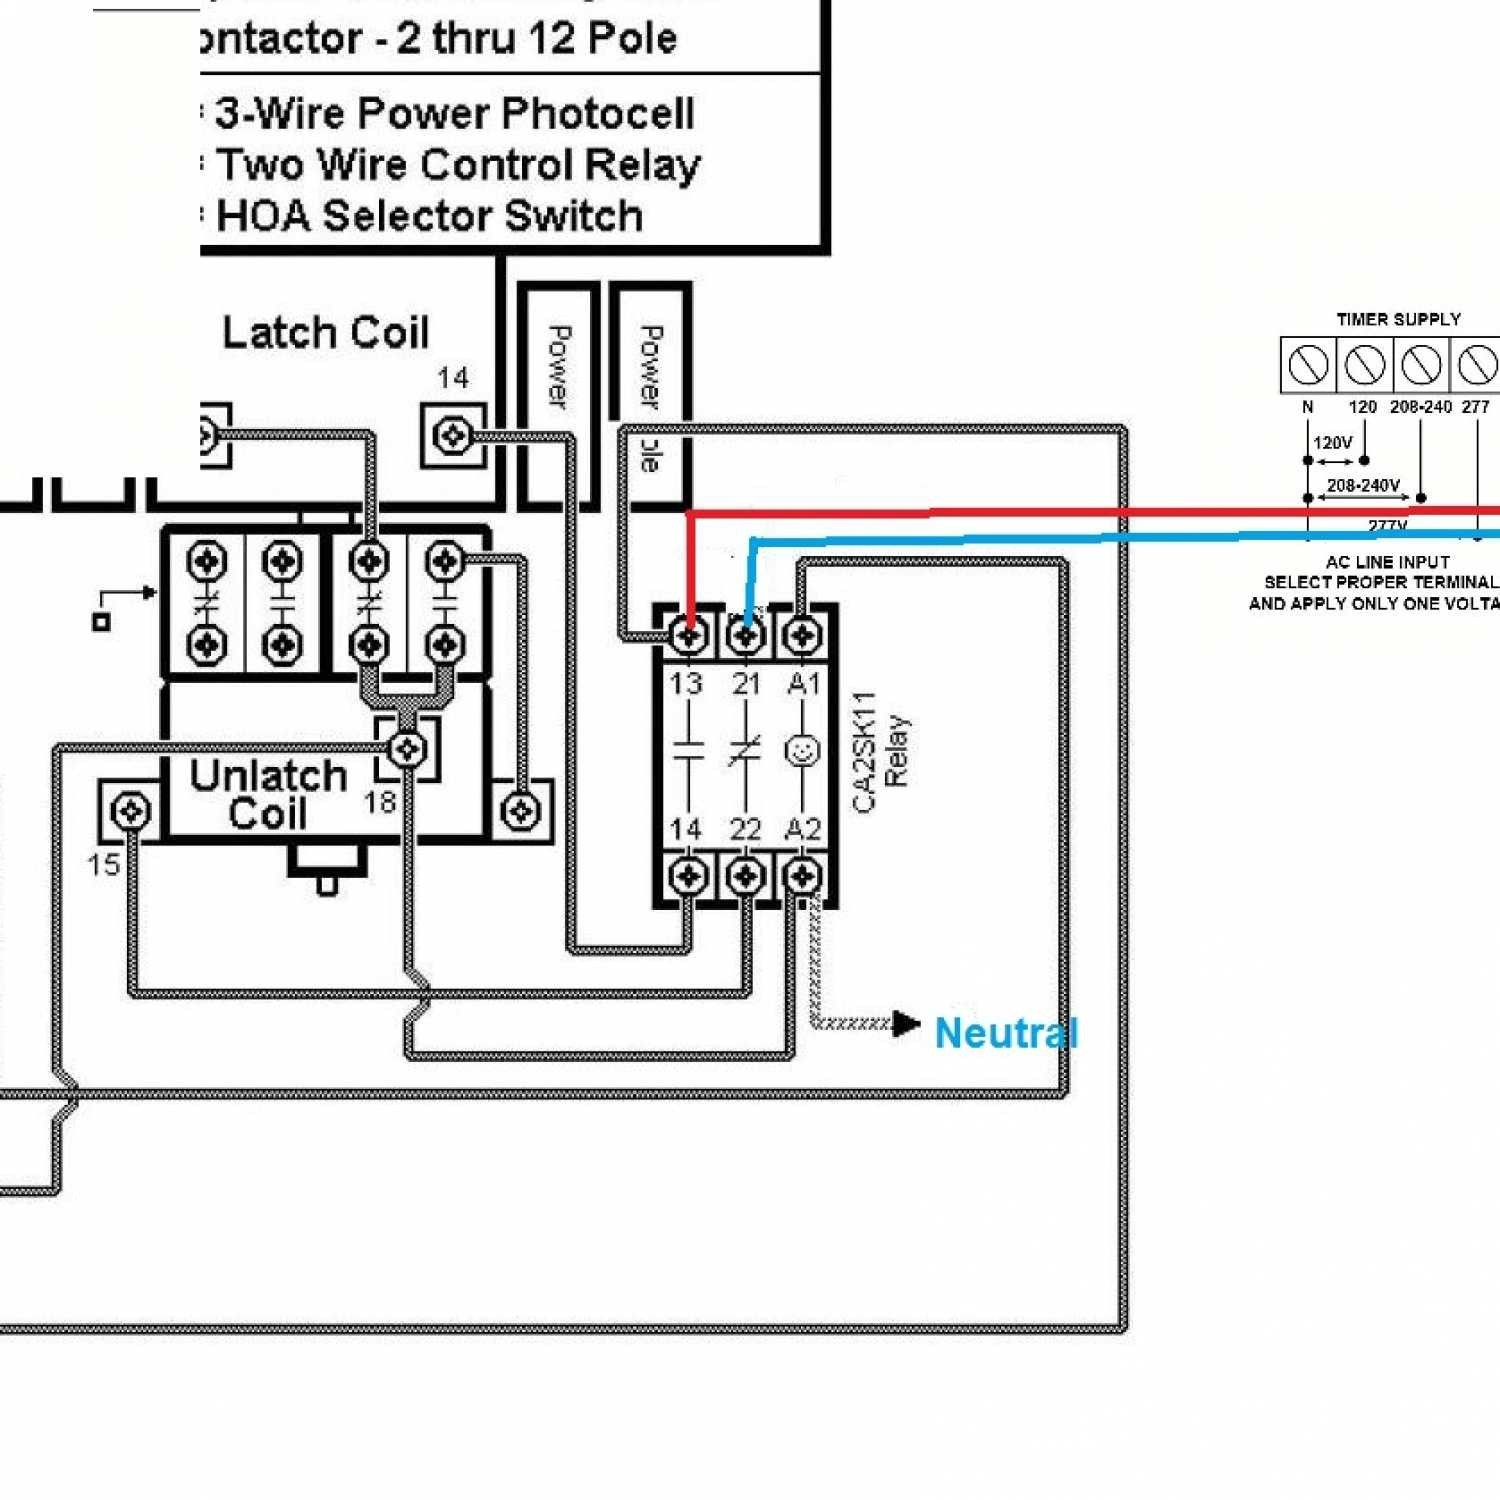 How To Wire A Square D Lighting Contactor: Lighting Contactor With  Photocell Wiring Schematic.